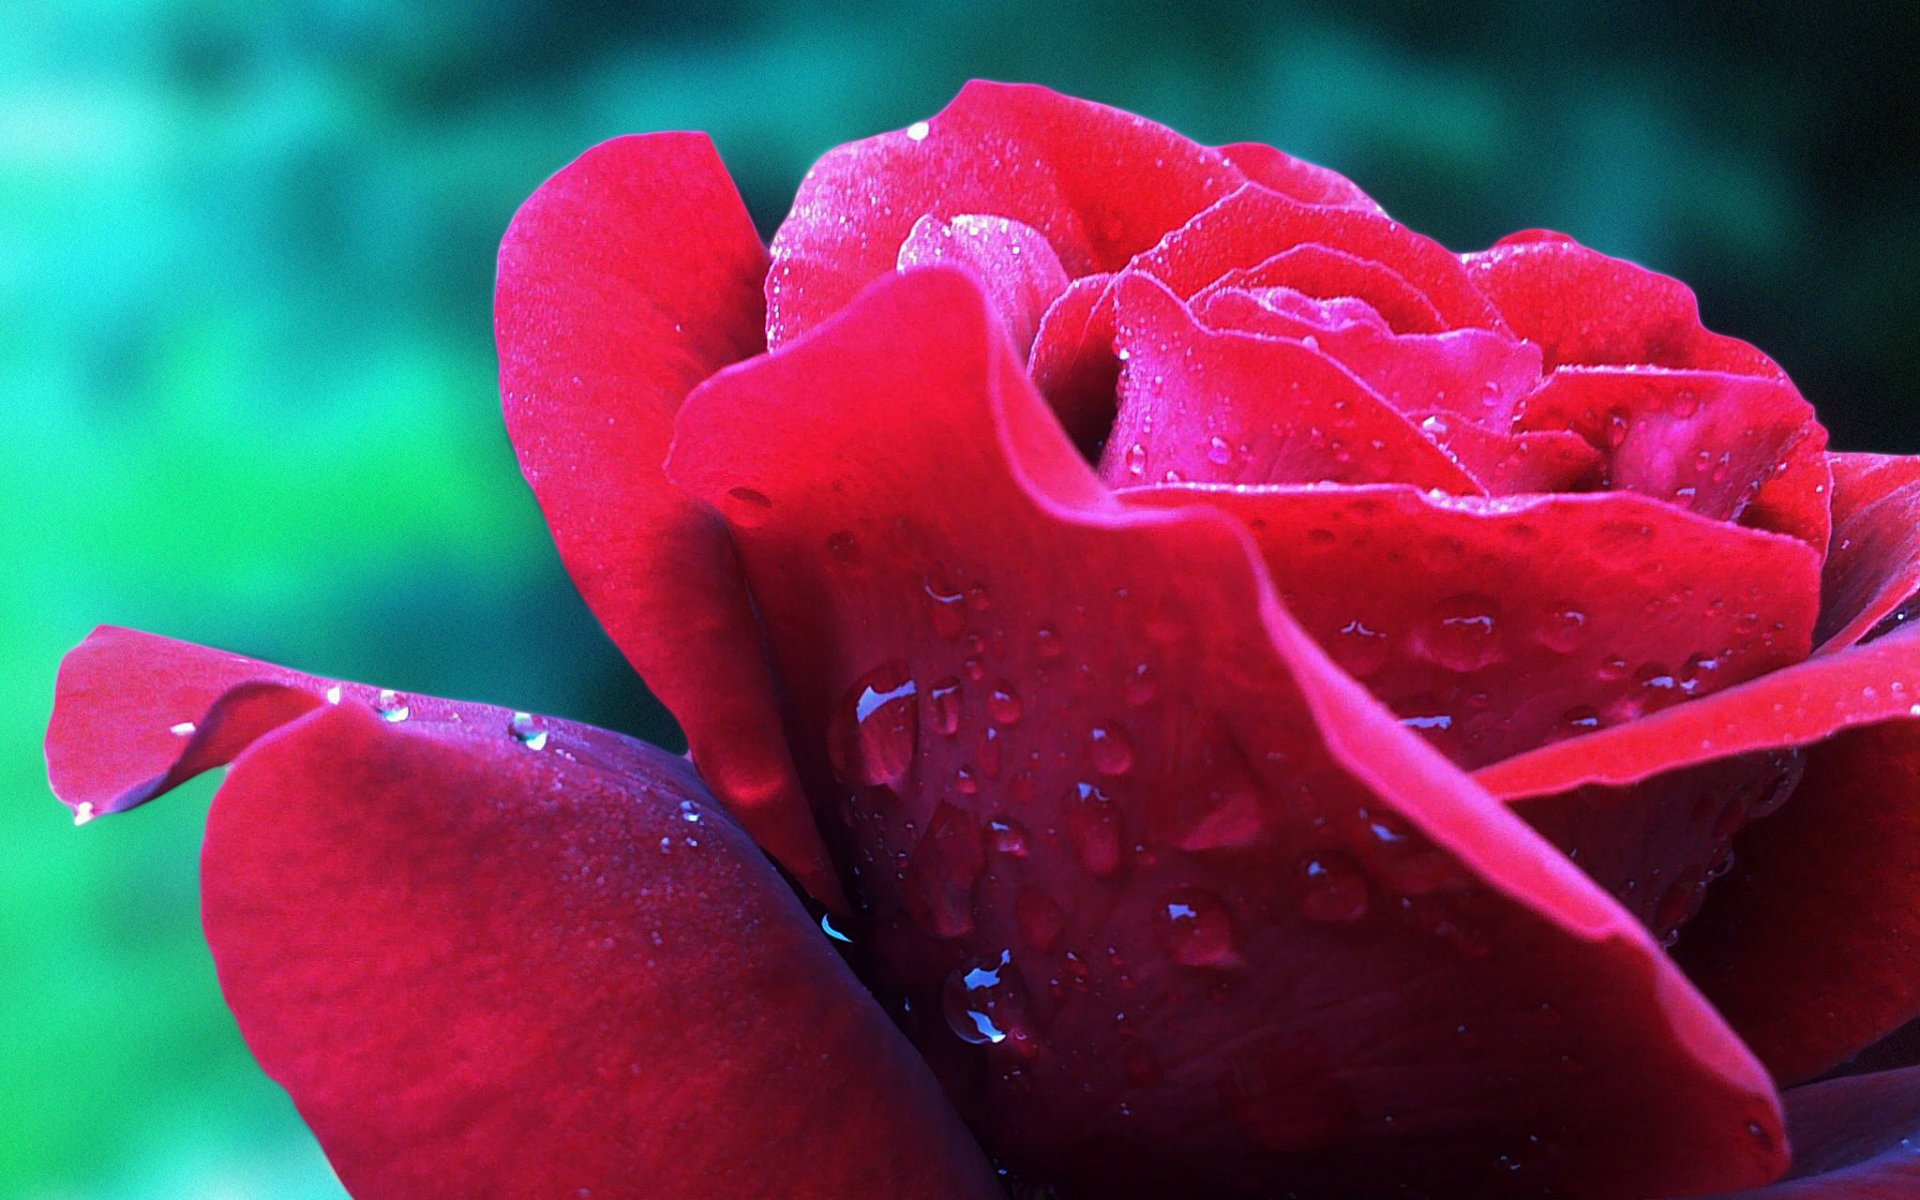 Earth - Rose Flower Red Rose Red Flower Water Drop Wallpaper